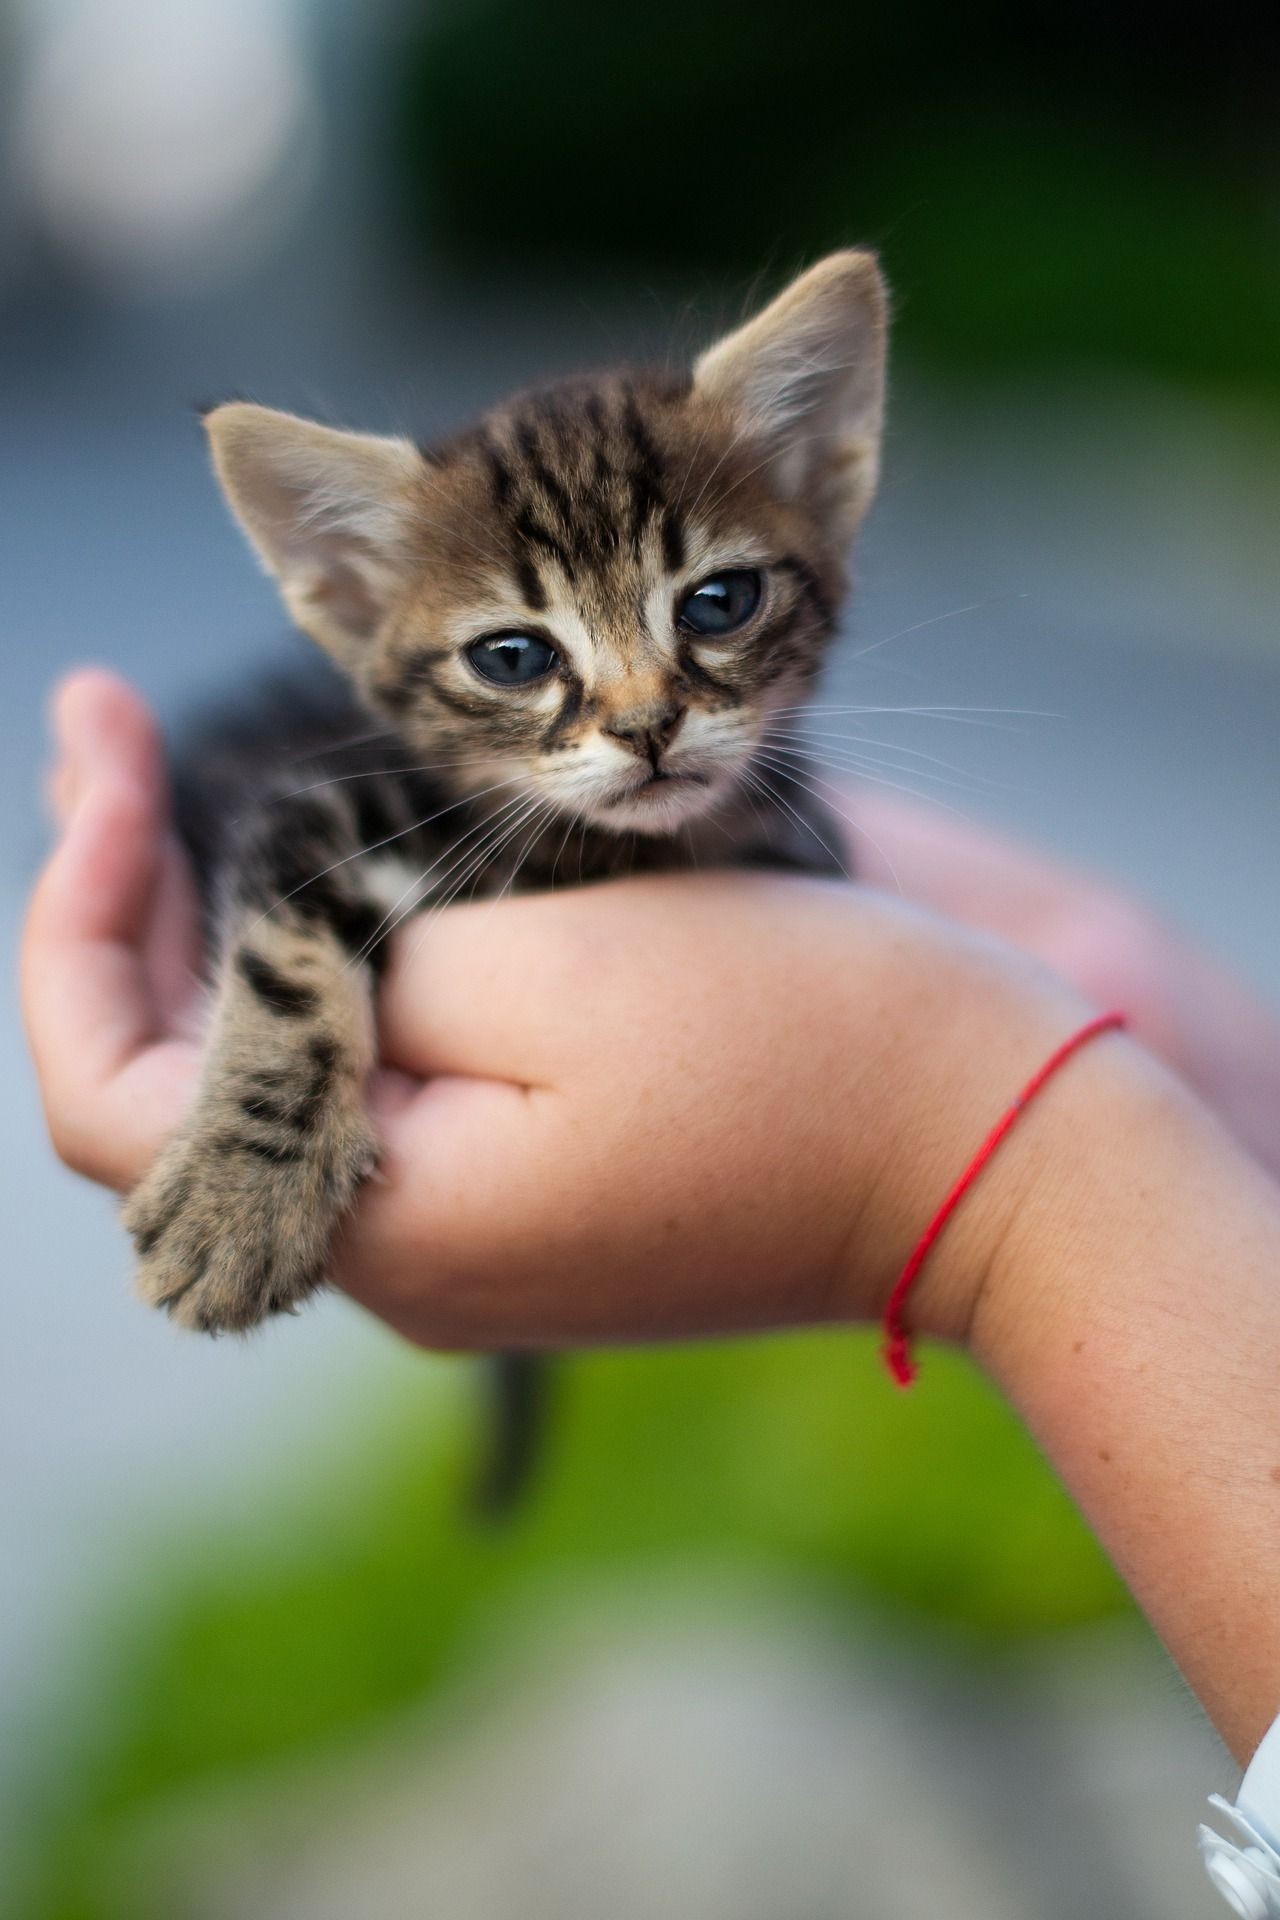 Most Adorable Kitty Held By Human Hands Adorablekitty Tinycat